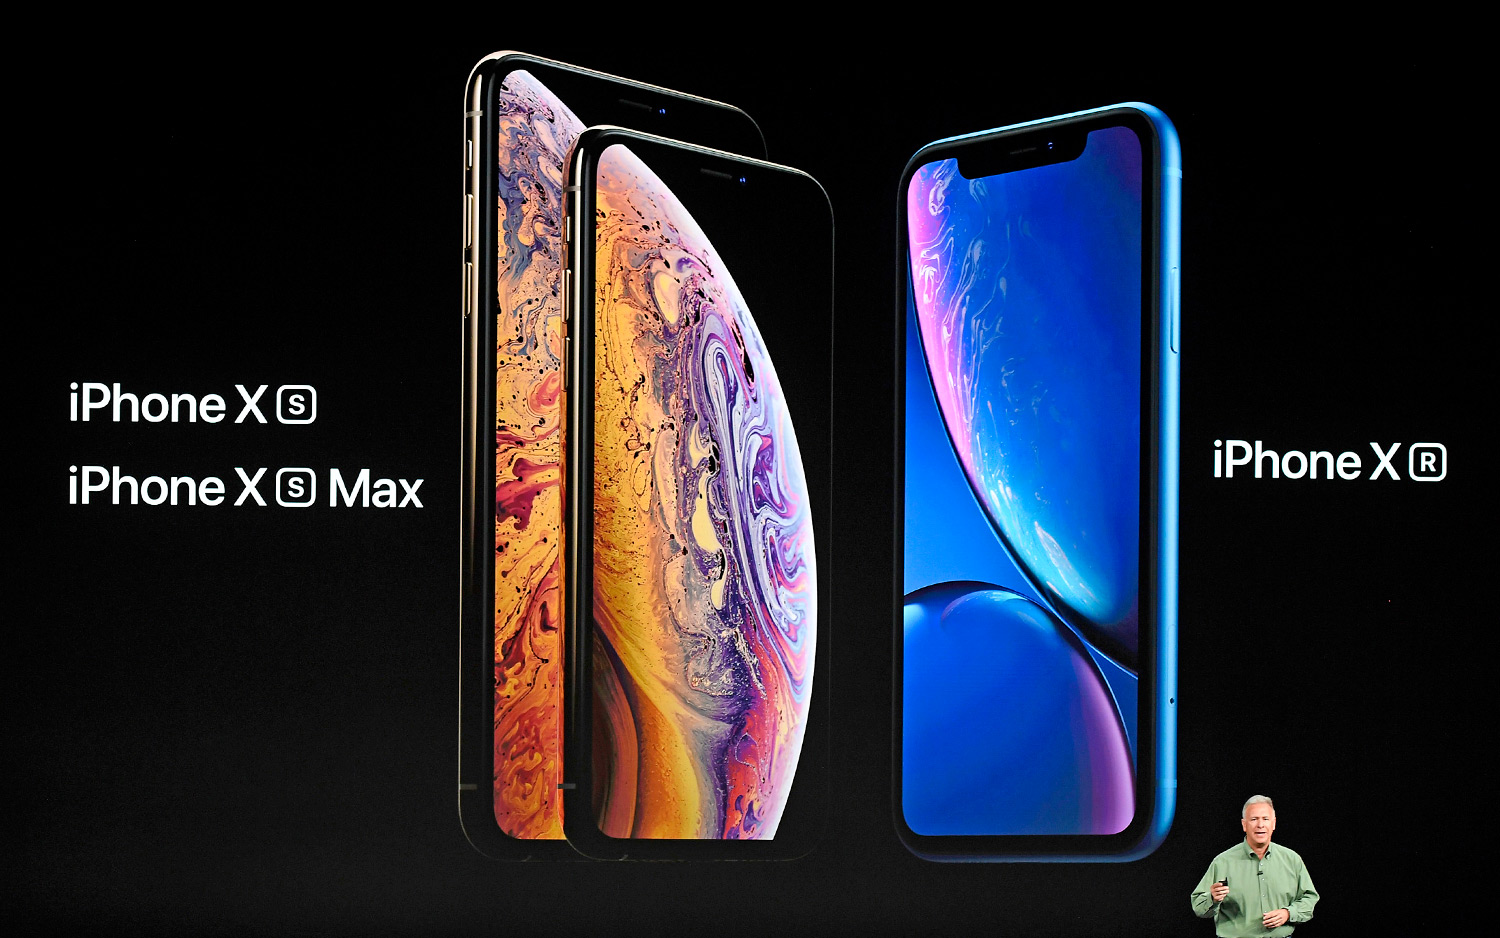 iPhone XS vs iPhone XS Max vs iPhone XR: What Should You Buy